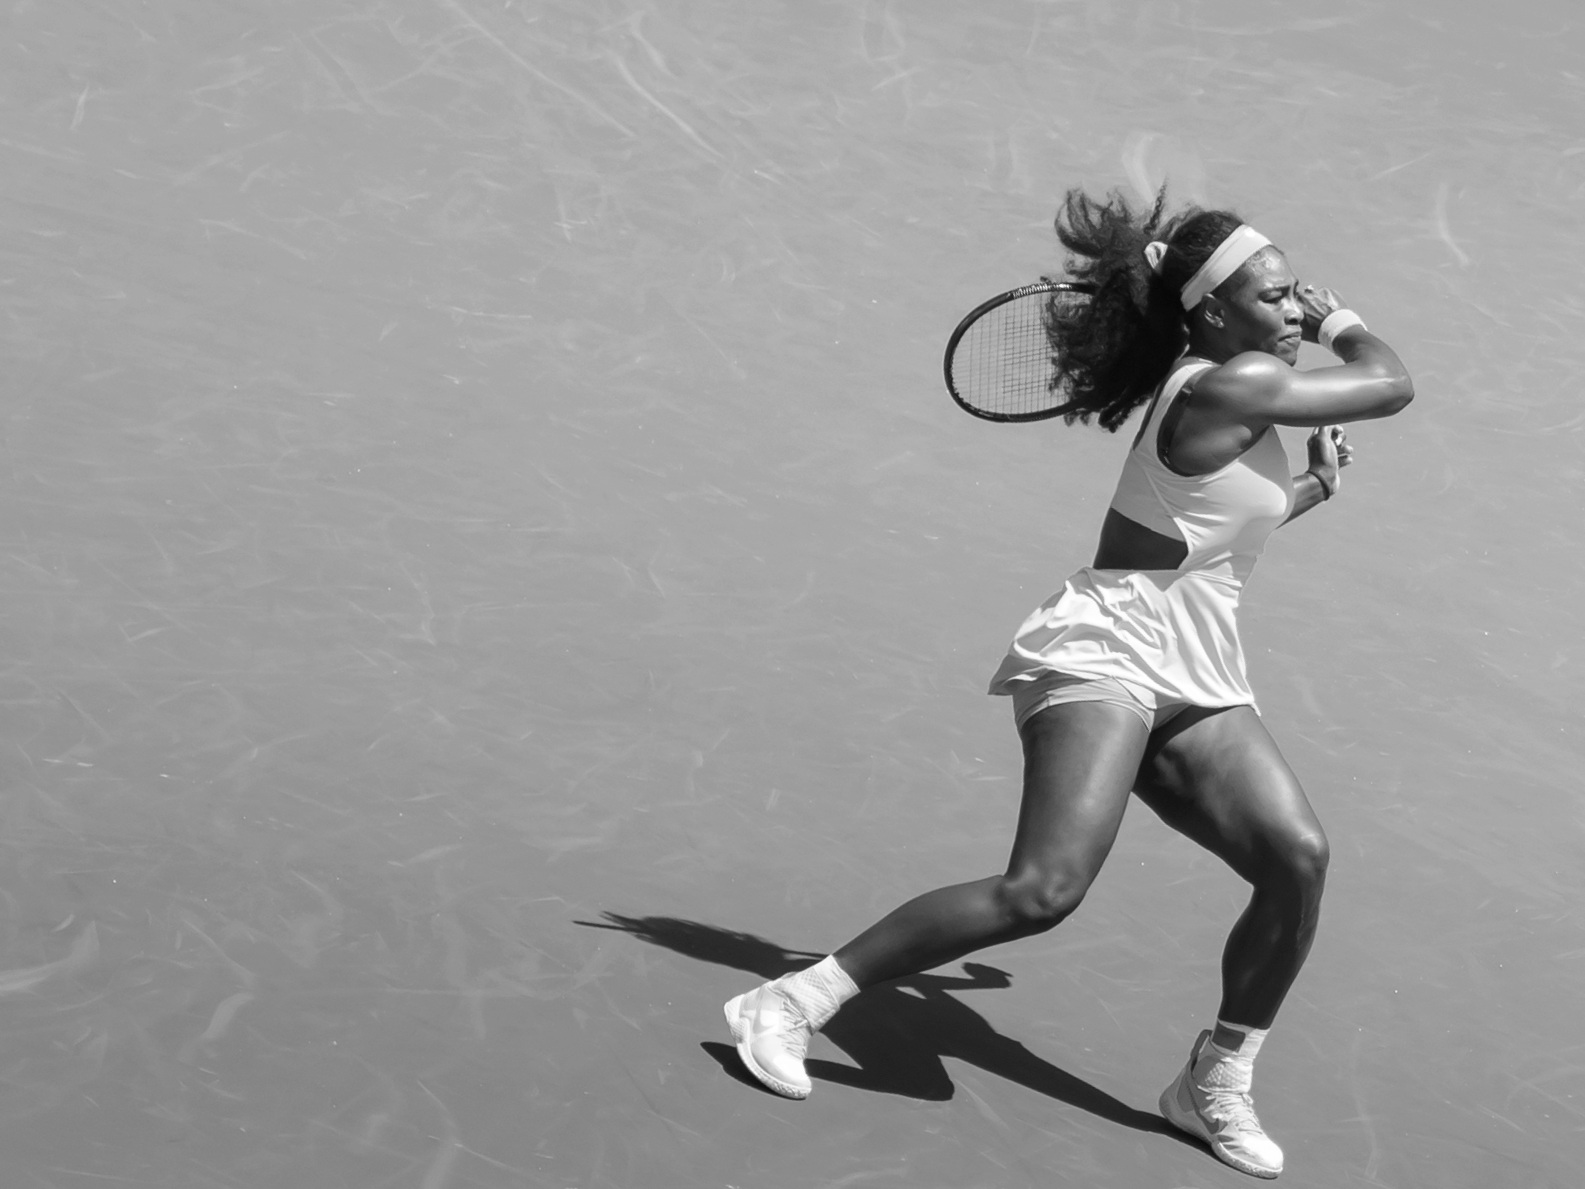 Serena_Williams_defeated_Carla_Suarez_Navarro_6-2%2C_6-0_wins_Miami_Open%21_-_150404-3980-jikatu_%2817033798902%29.jpg